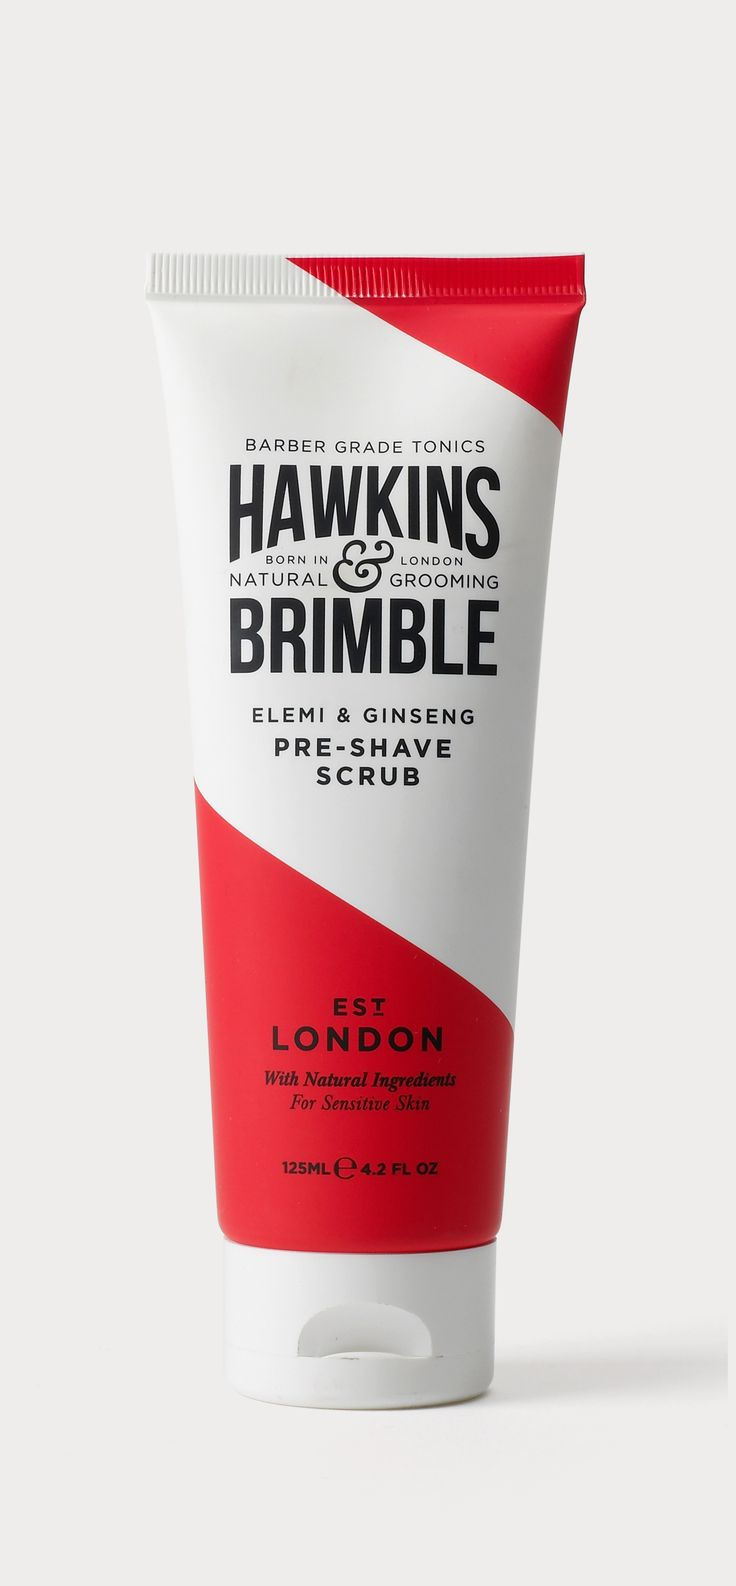 Brand identity and packaging design for Hawkins and Brimble. The brief was to de...